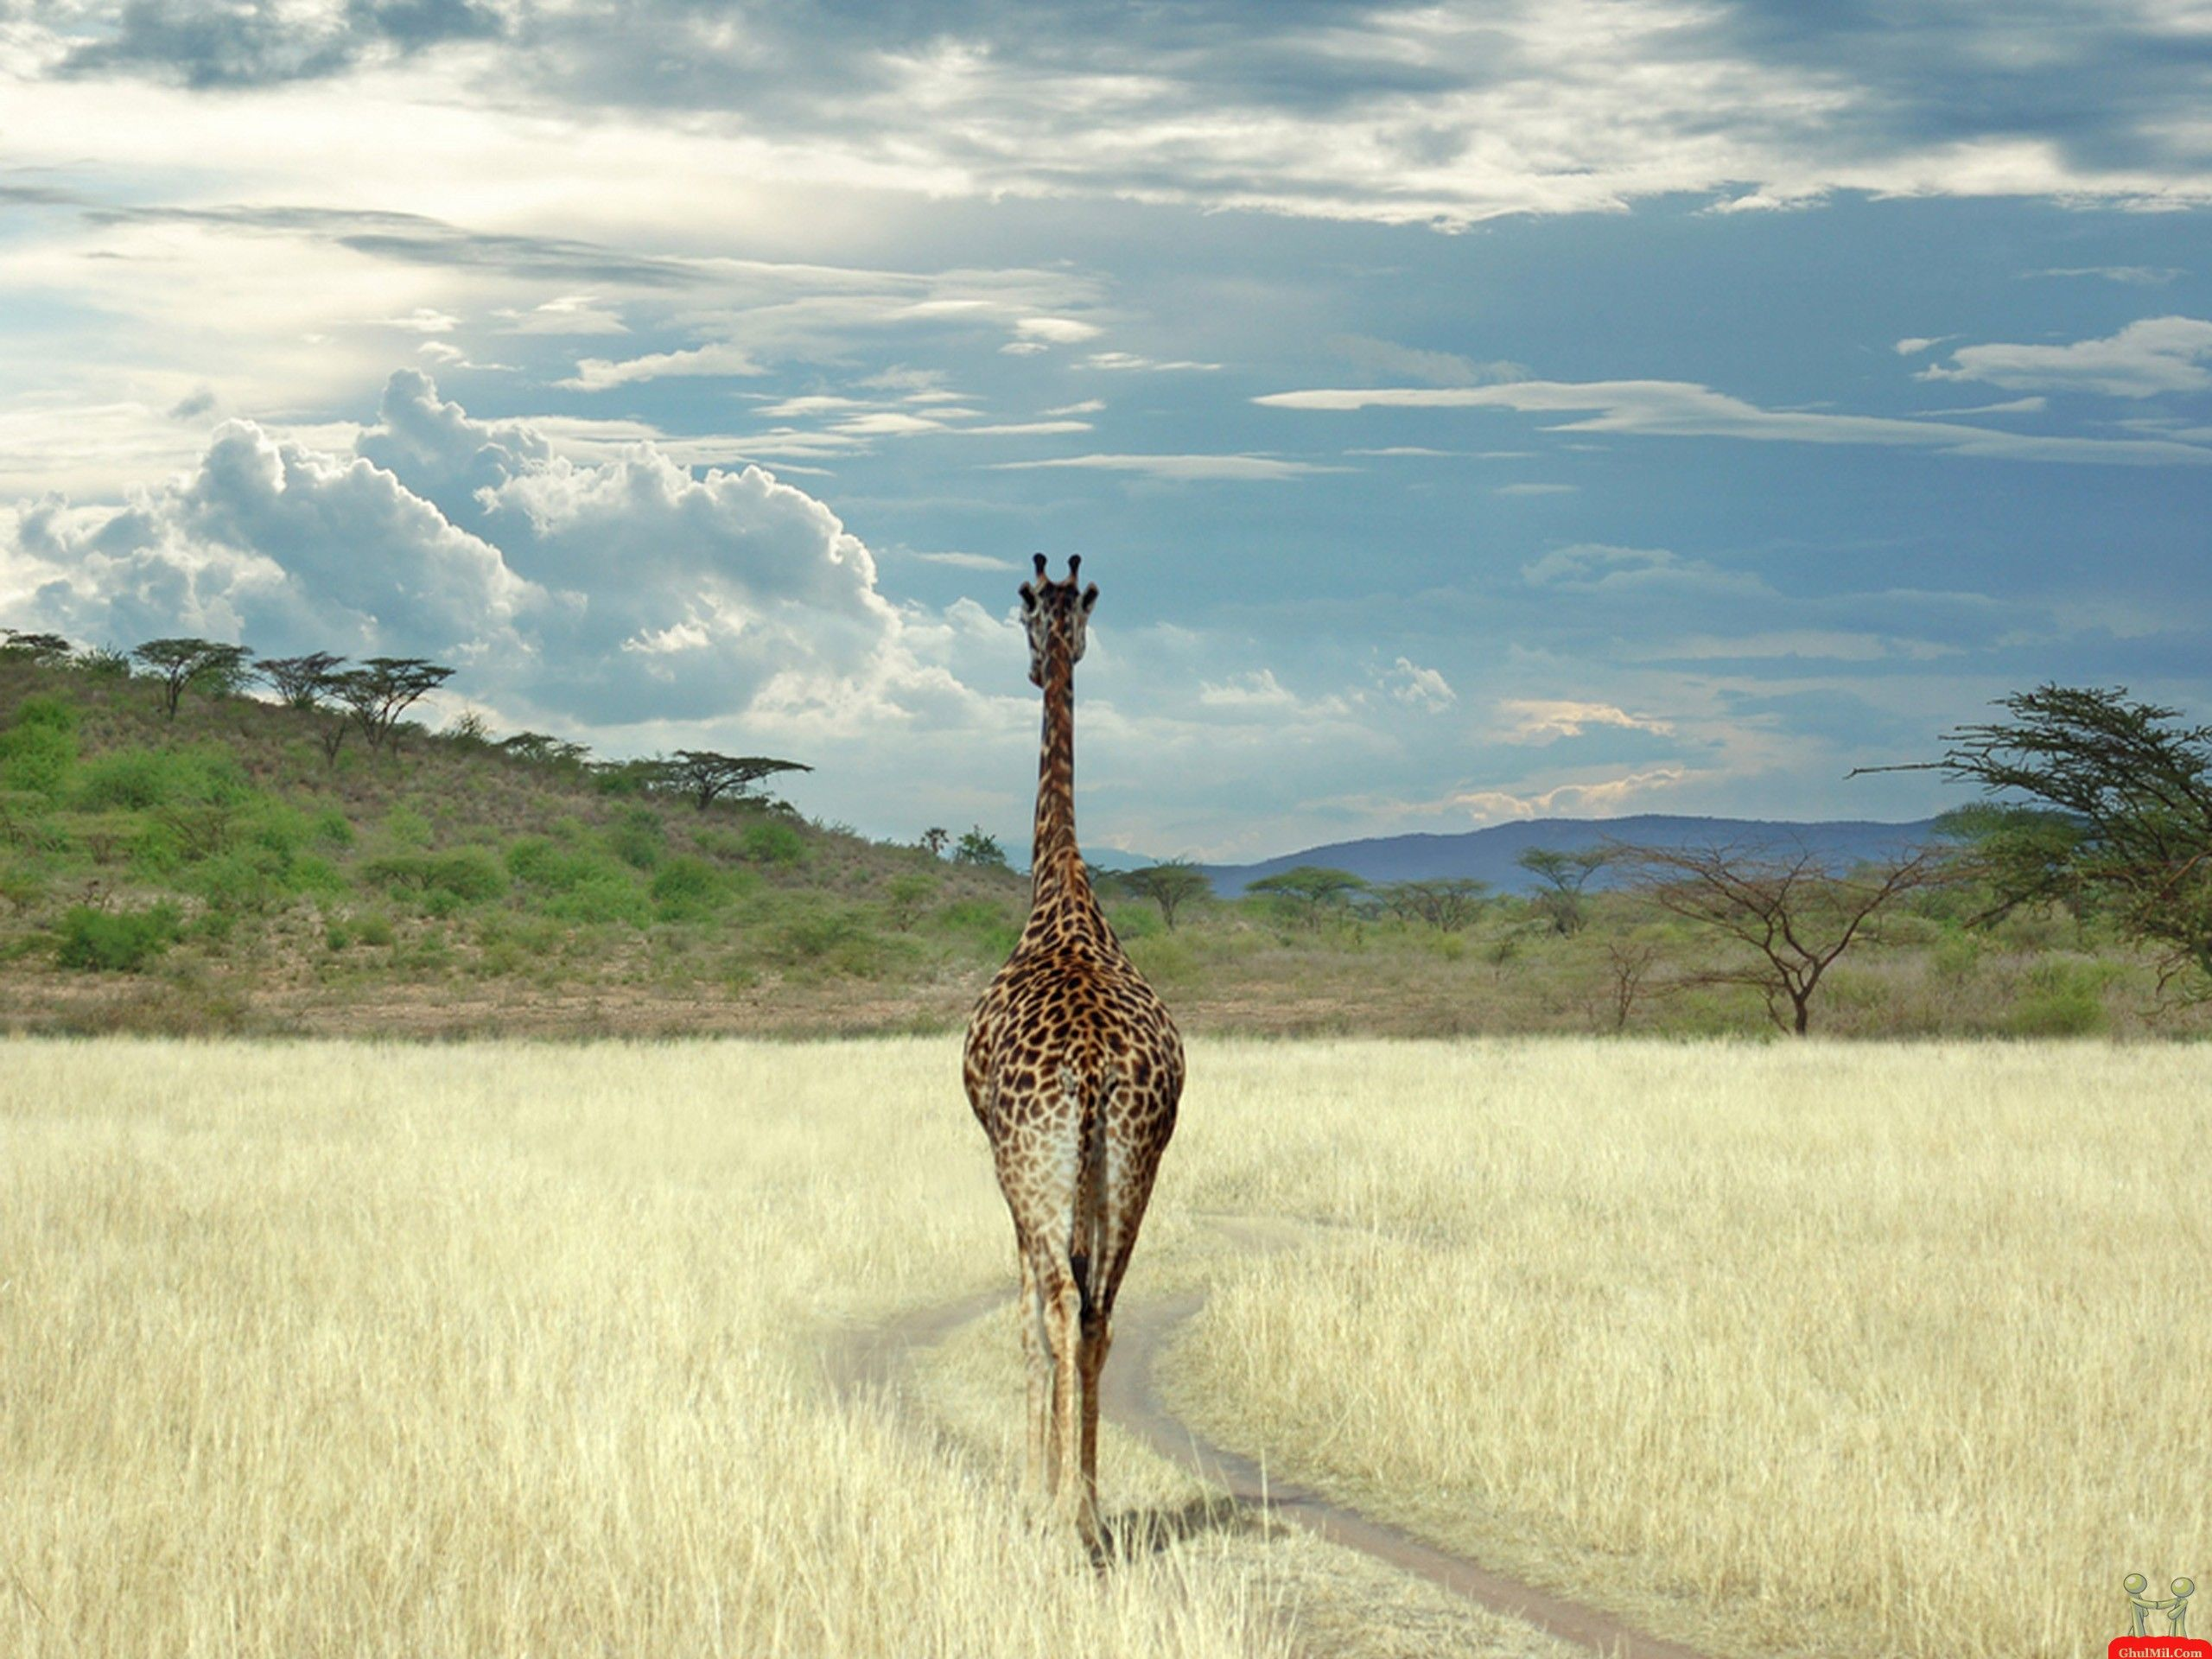 Giraffe In Africa Wild Life HD Wallpaper